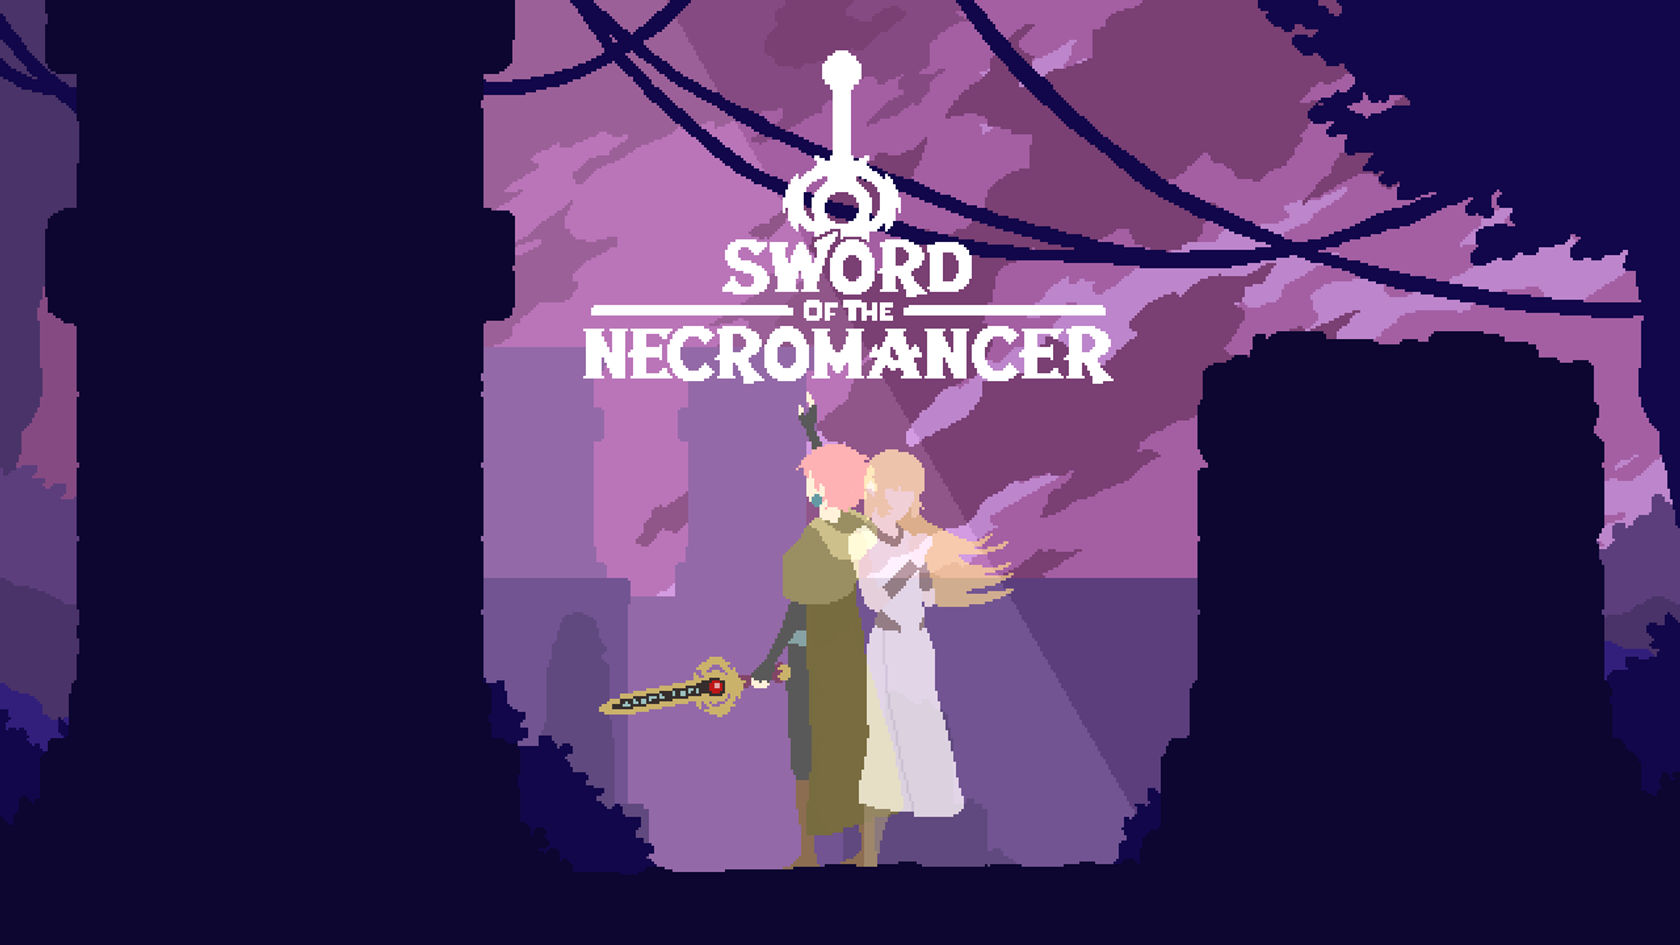 Sword of Necromancer